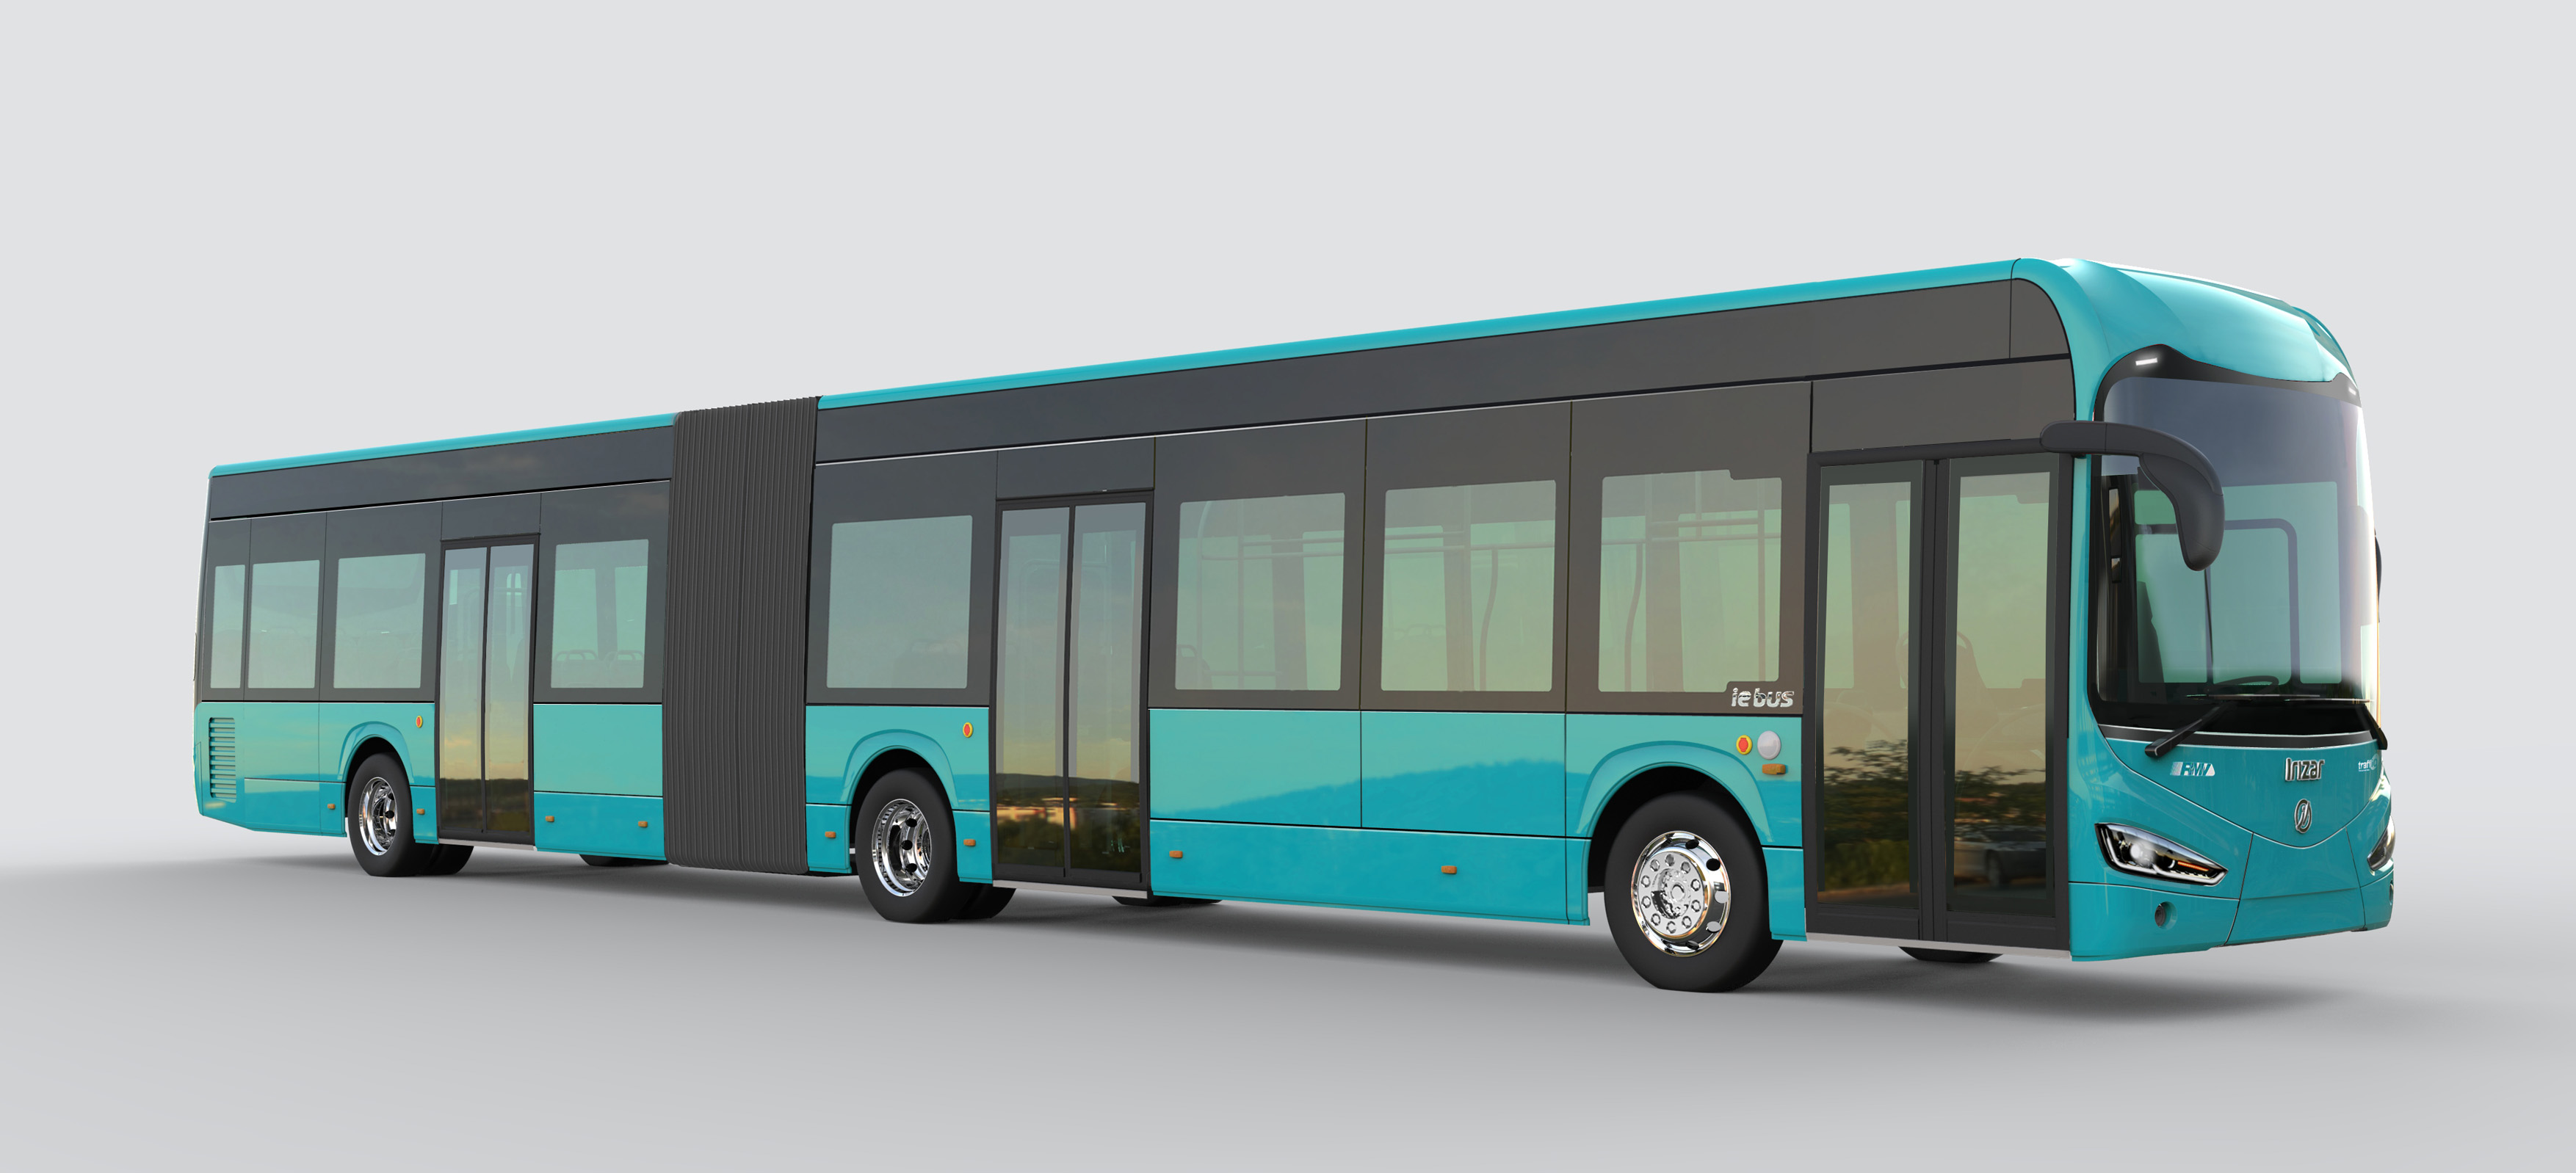 Articulated Irizar ie bus for Frankfurt